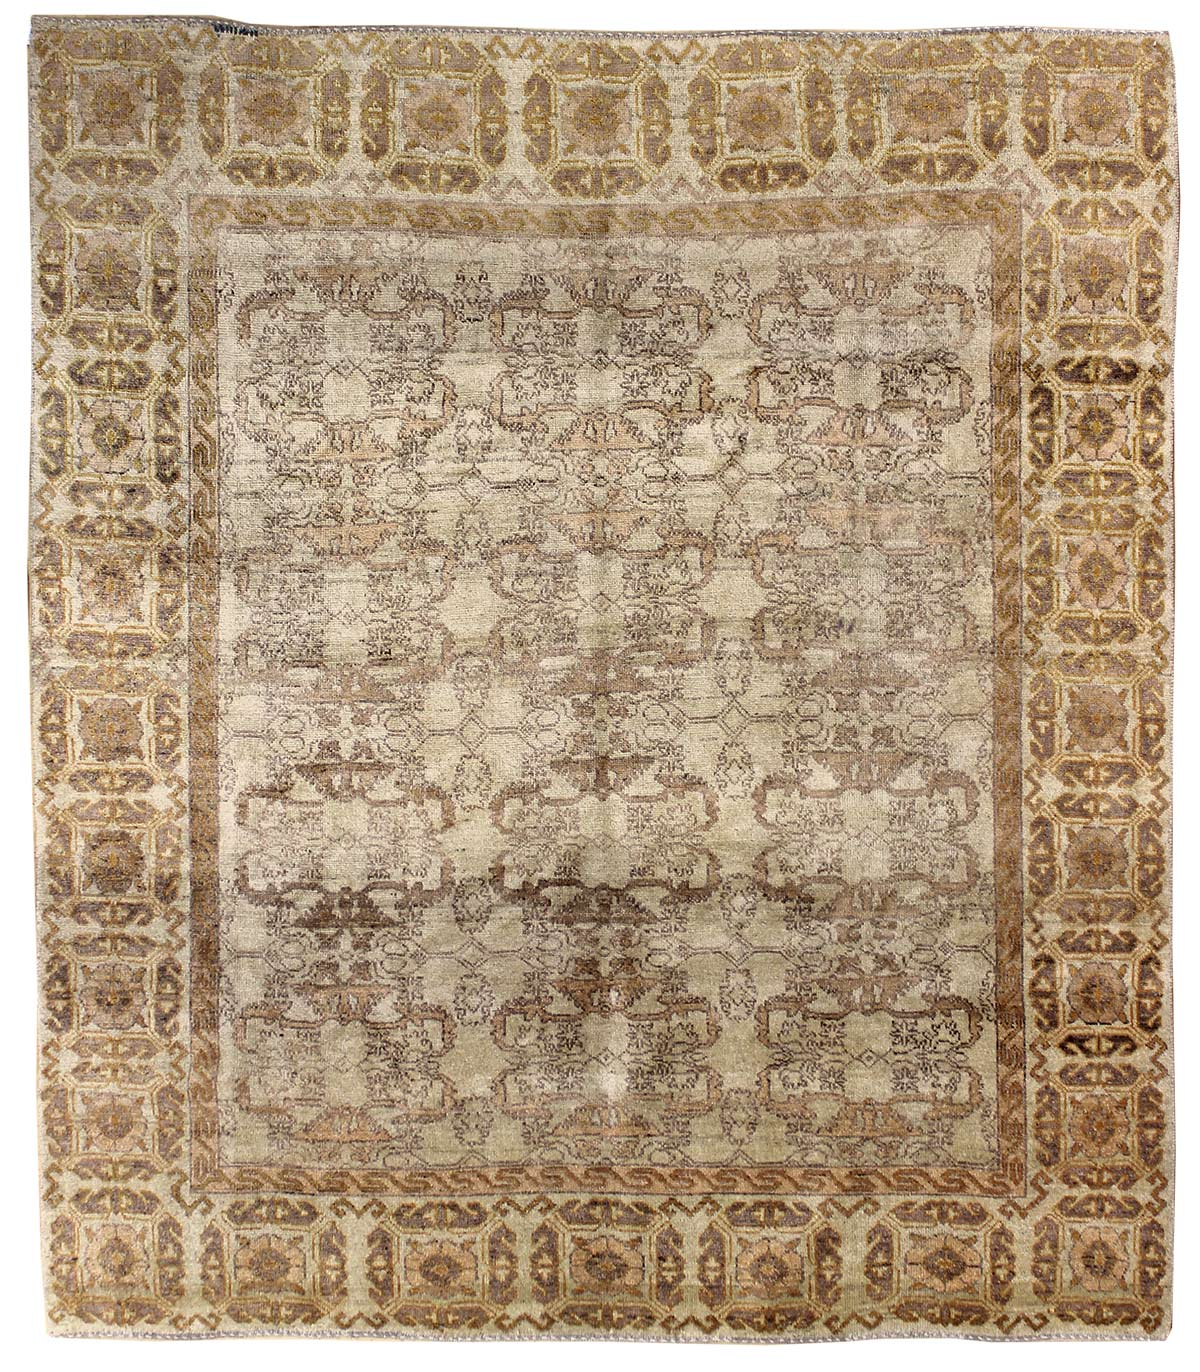 Loto Handwoven Traditional Rug